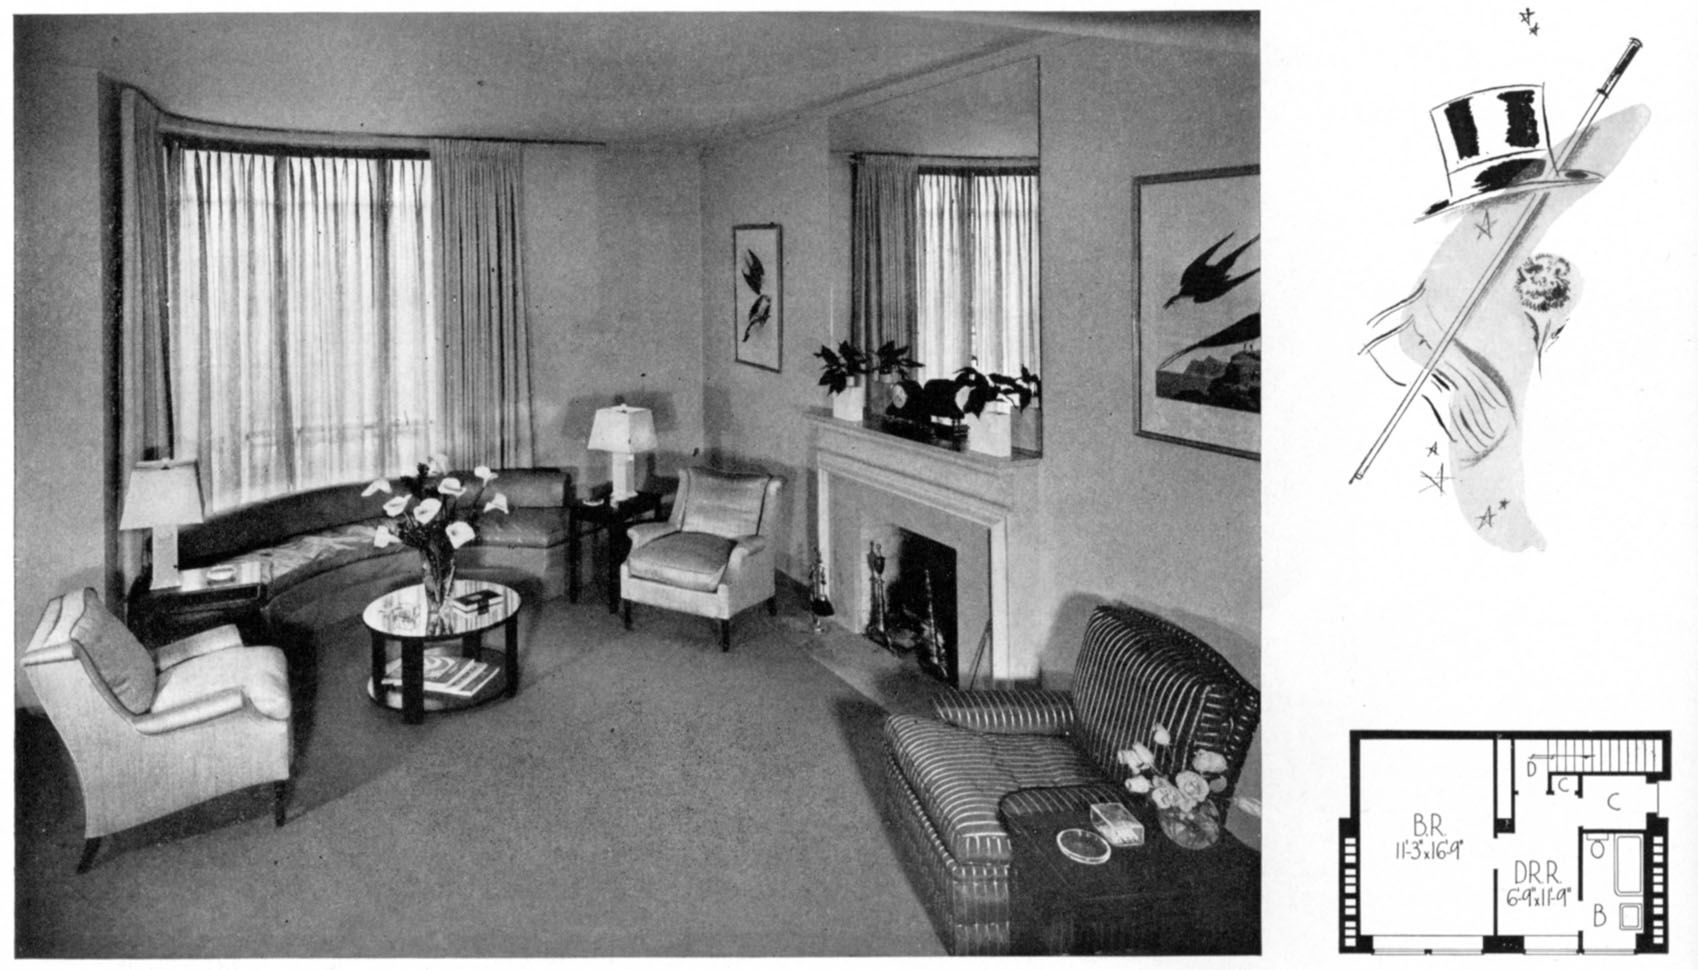 1930s interior design 1930s interior design living room for 1930s interior design living room